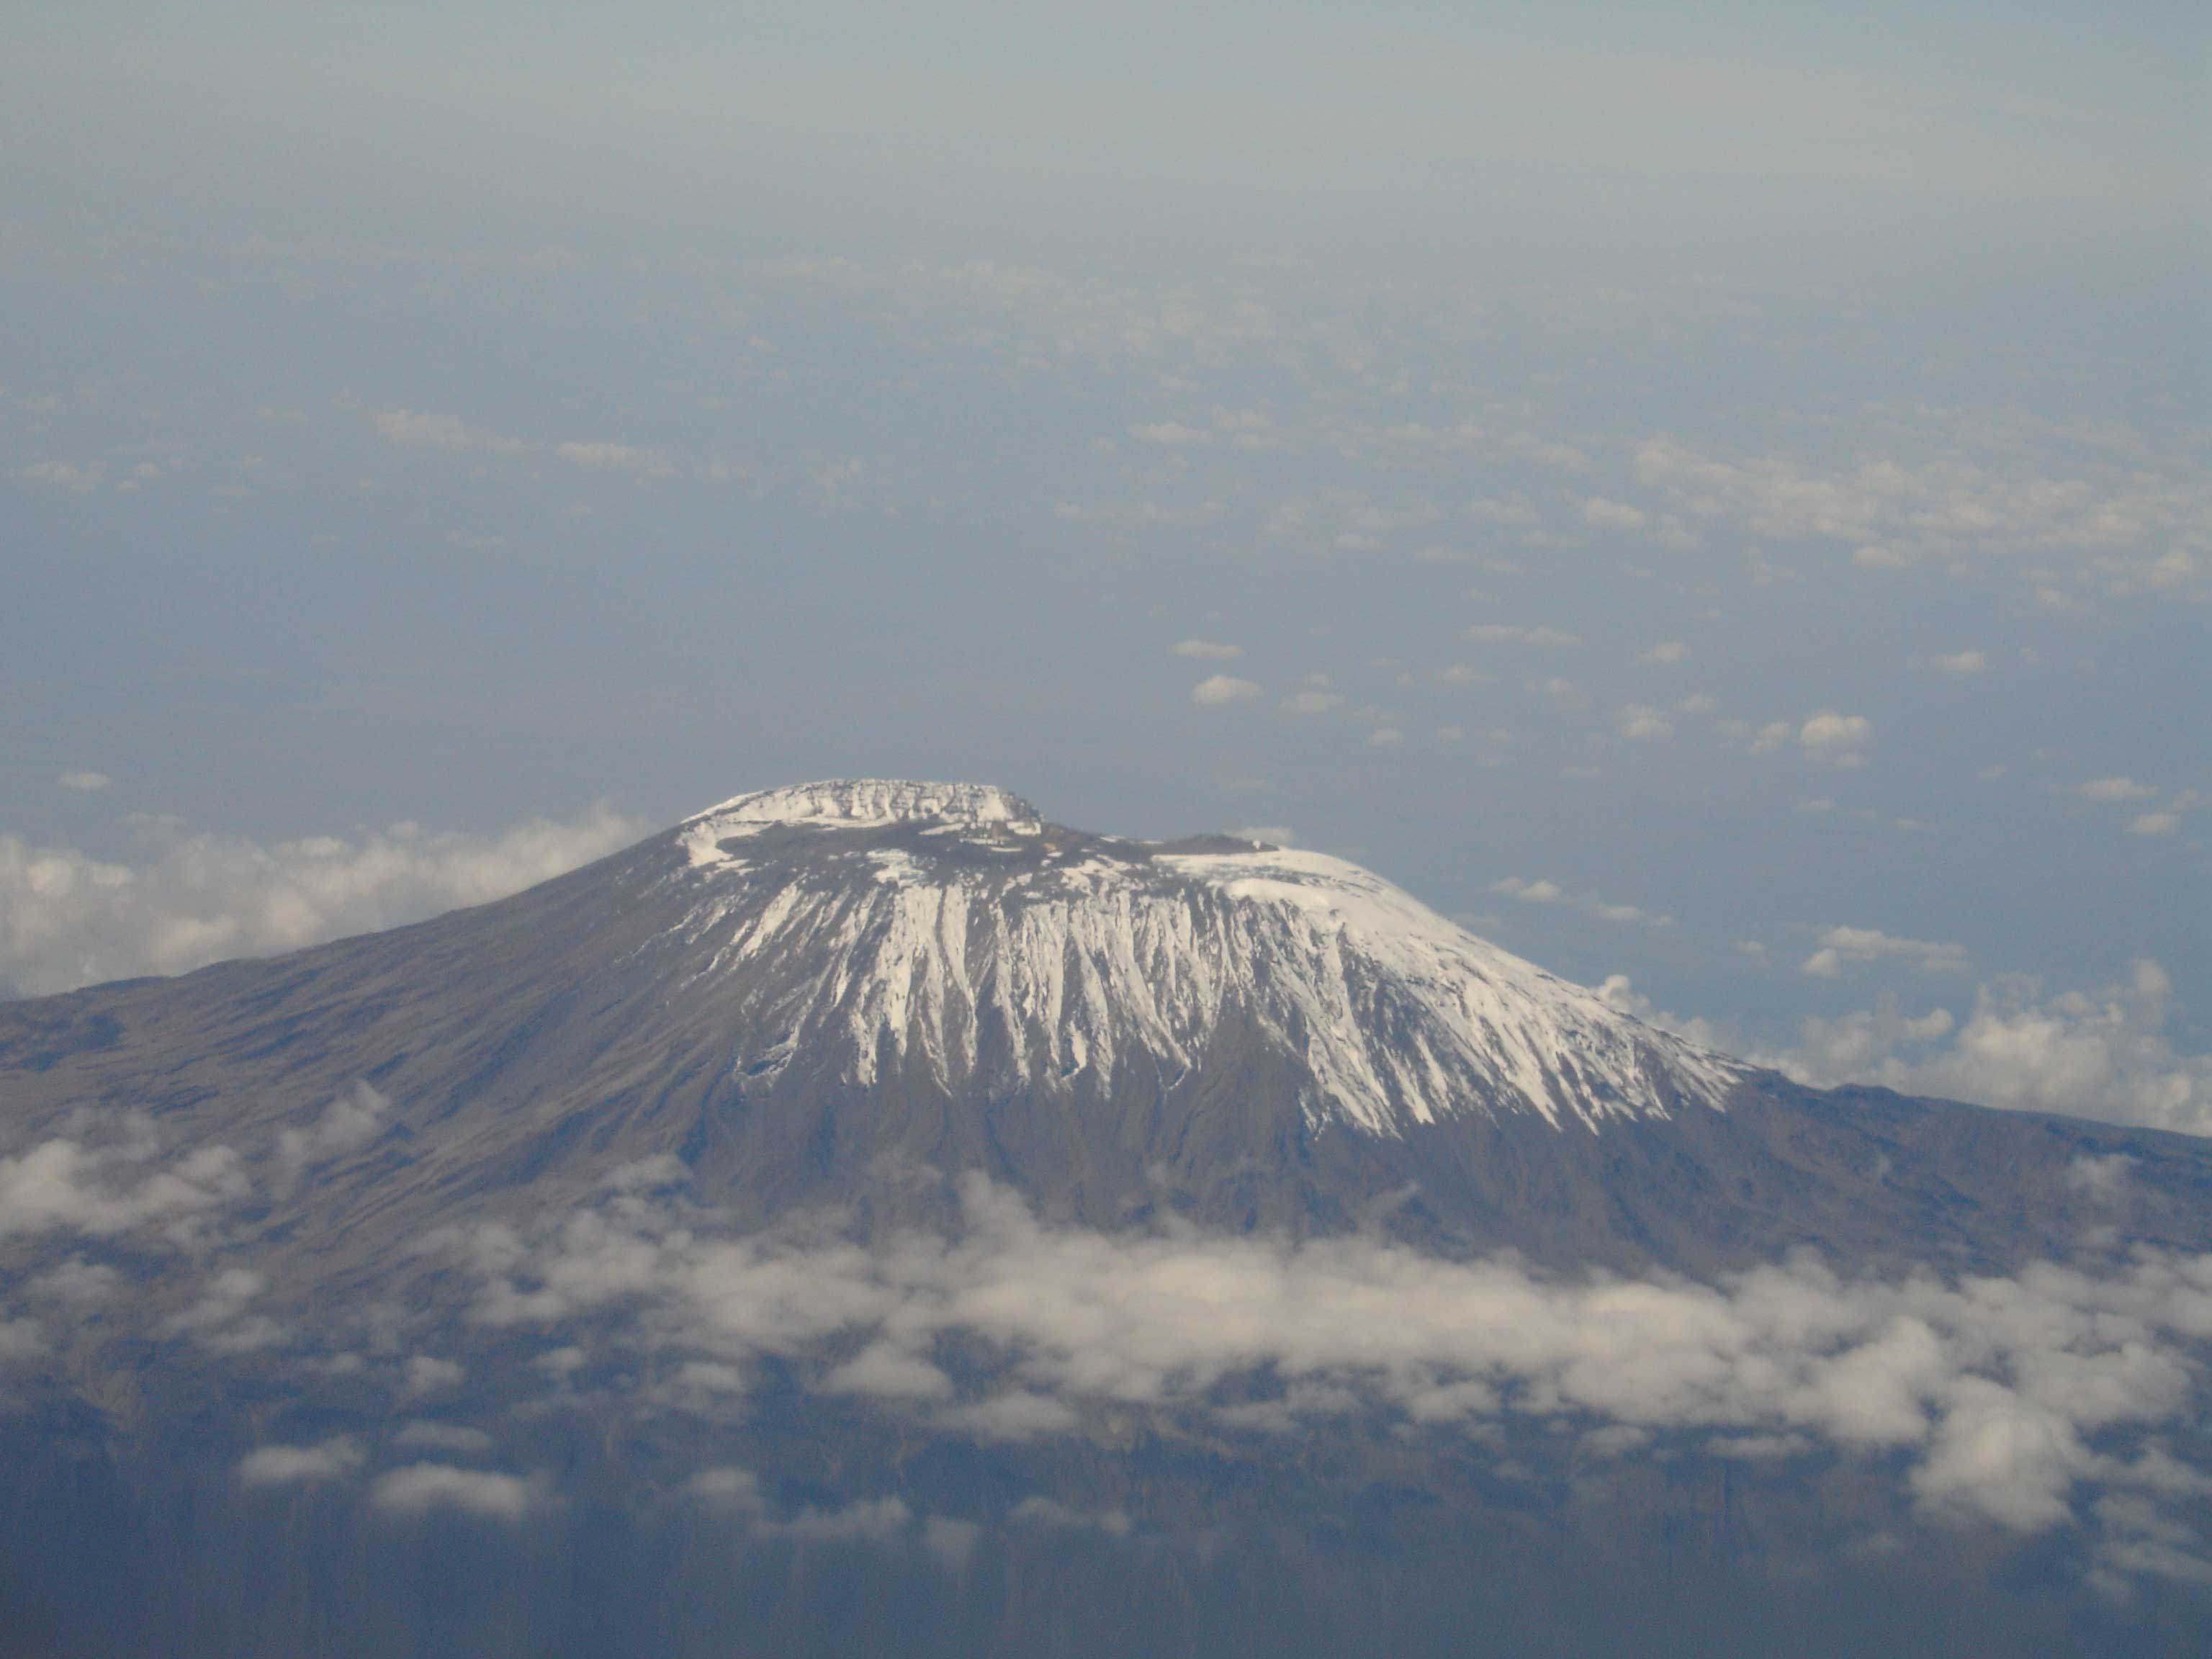 Ascension du Kilimandjaro, voie Marangu (5 895 m)